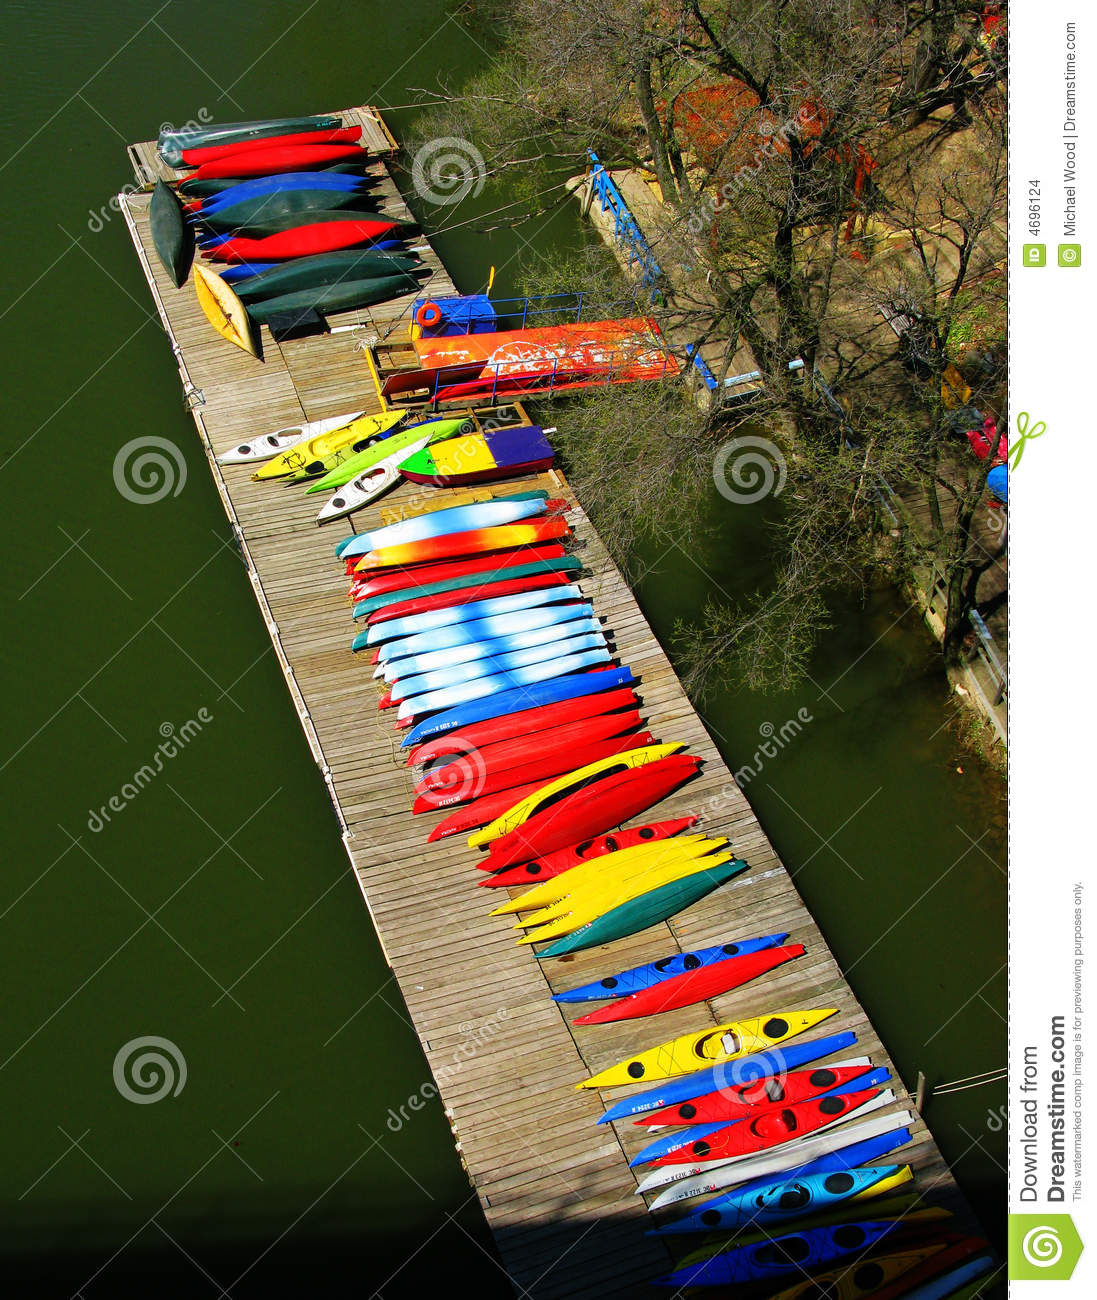 Potomac River Kayak Pier Stock Photo. Image Of River, Boat